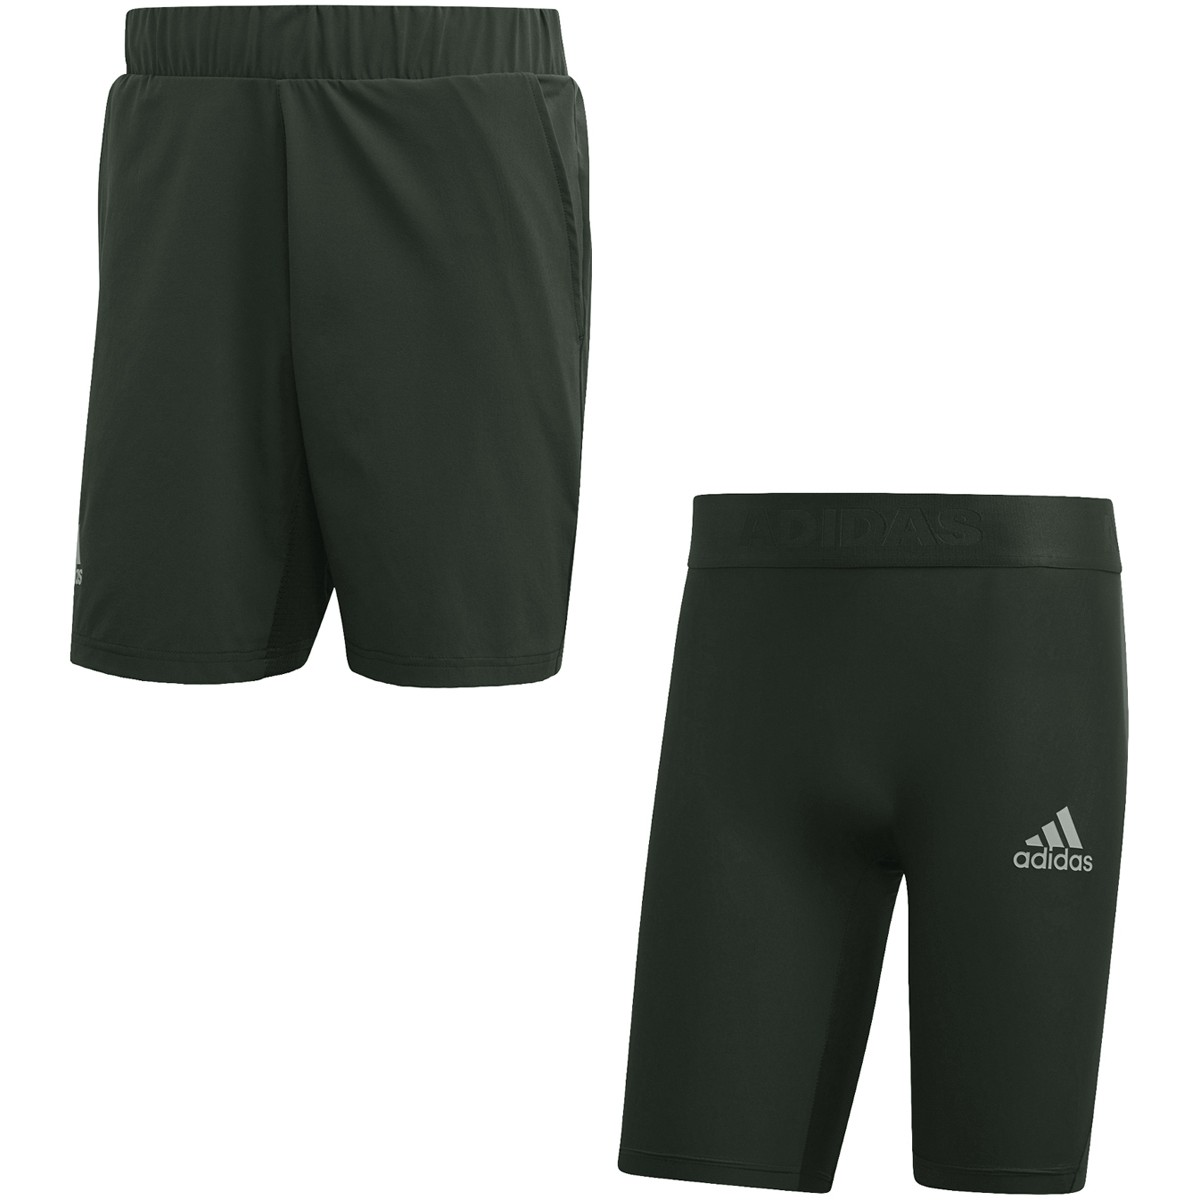 SHORT ADIDAS 2 EN 1 OPEN D'AUSTRALIE ATHLETES